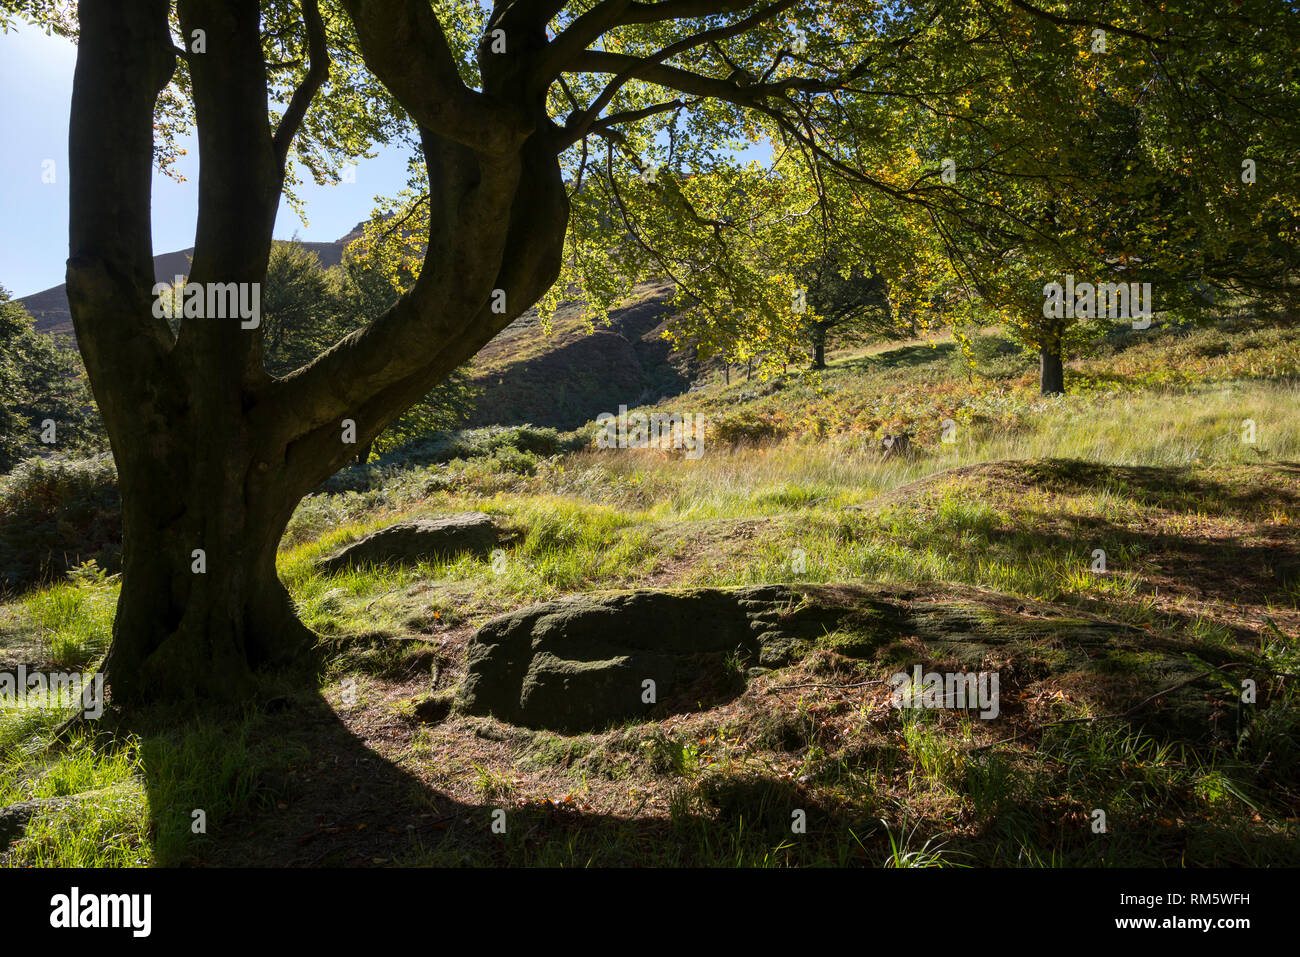 Mature Beech tree in the hills near Dove Stone reservoir, Greenfield, Peak District, England. Stock Photo